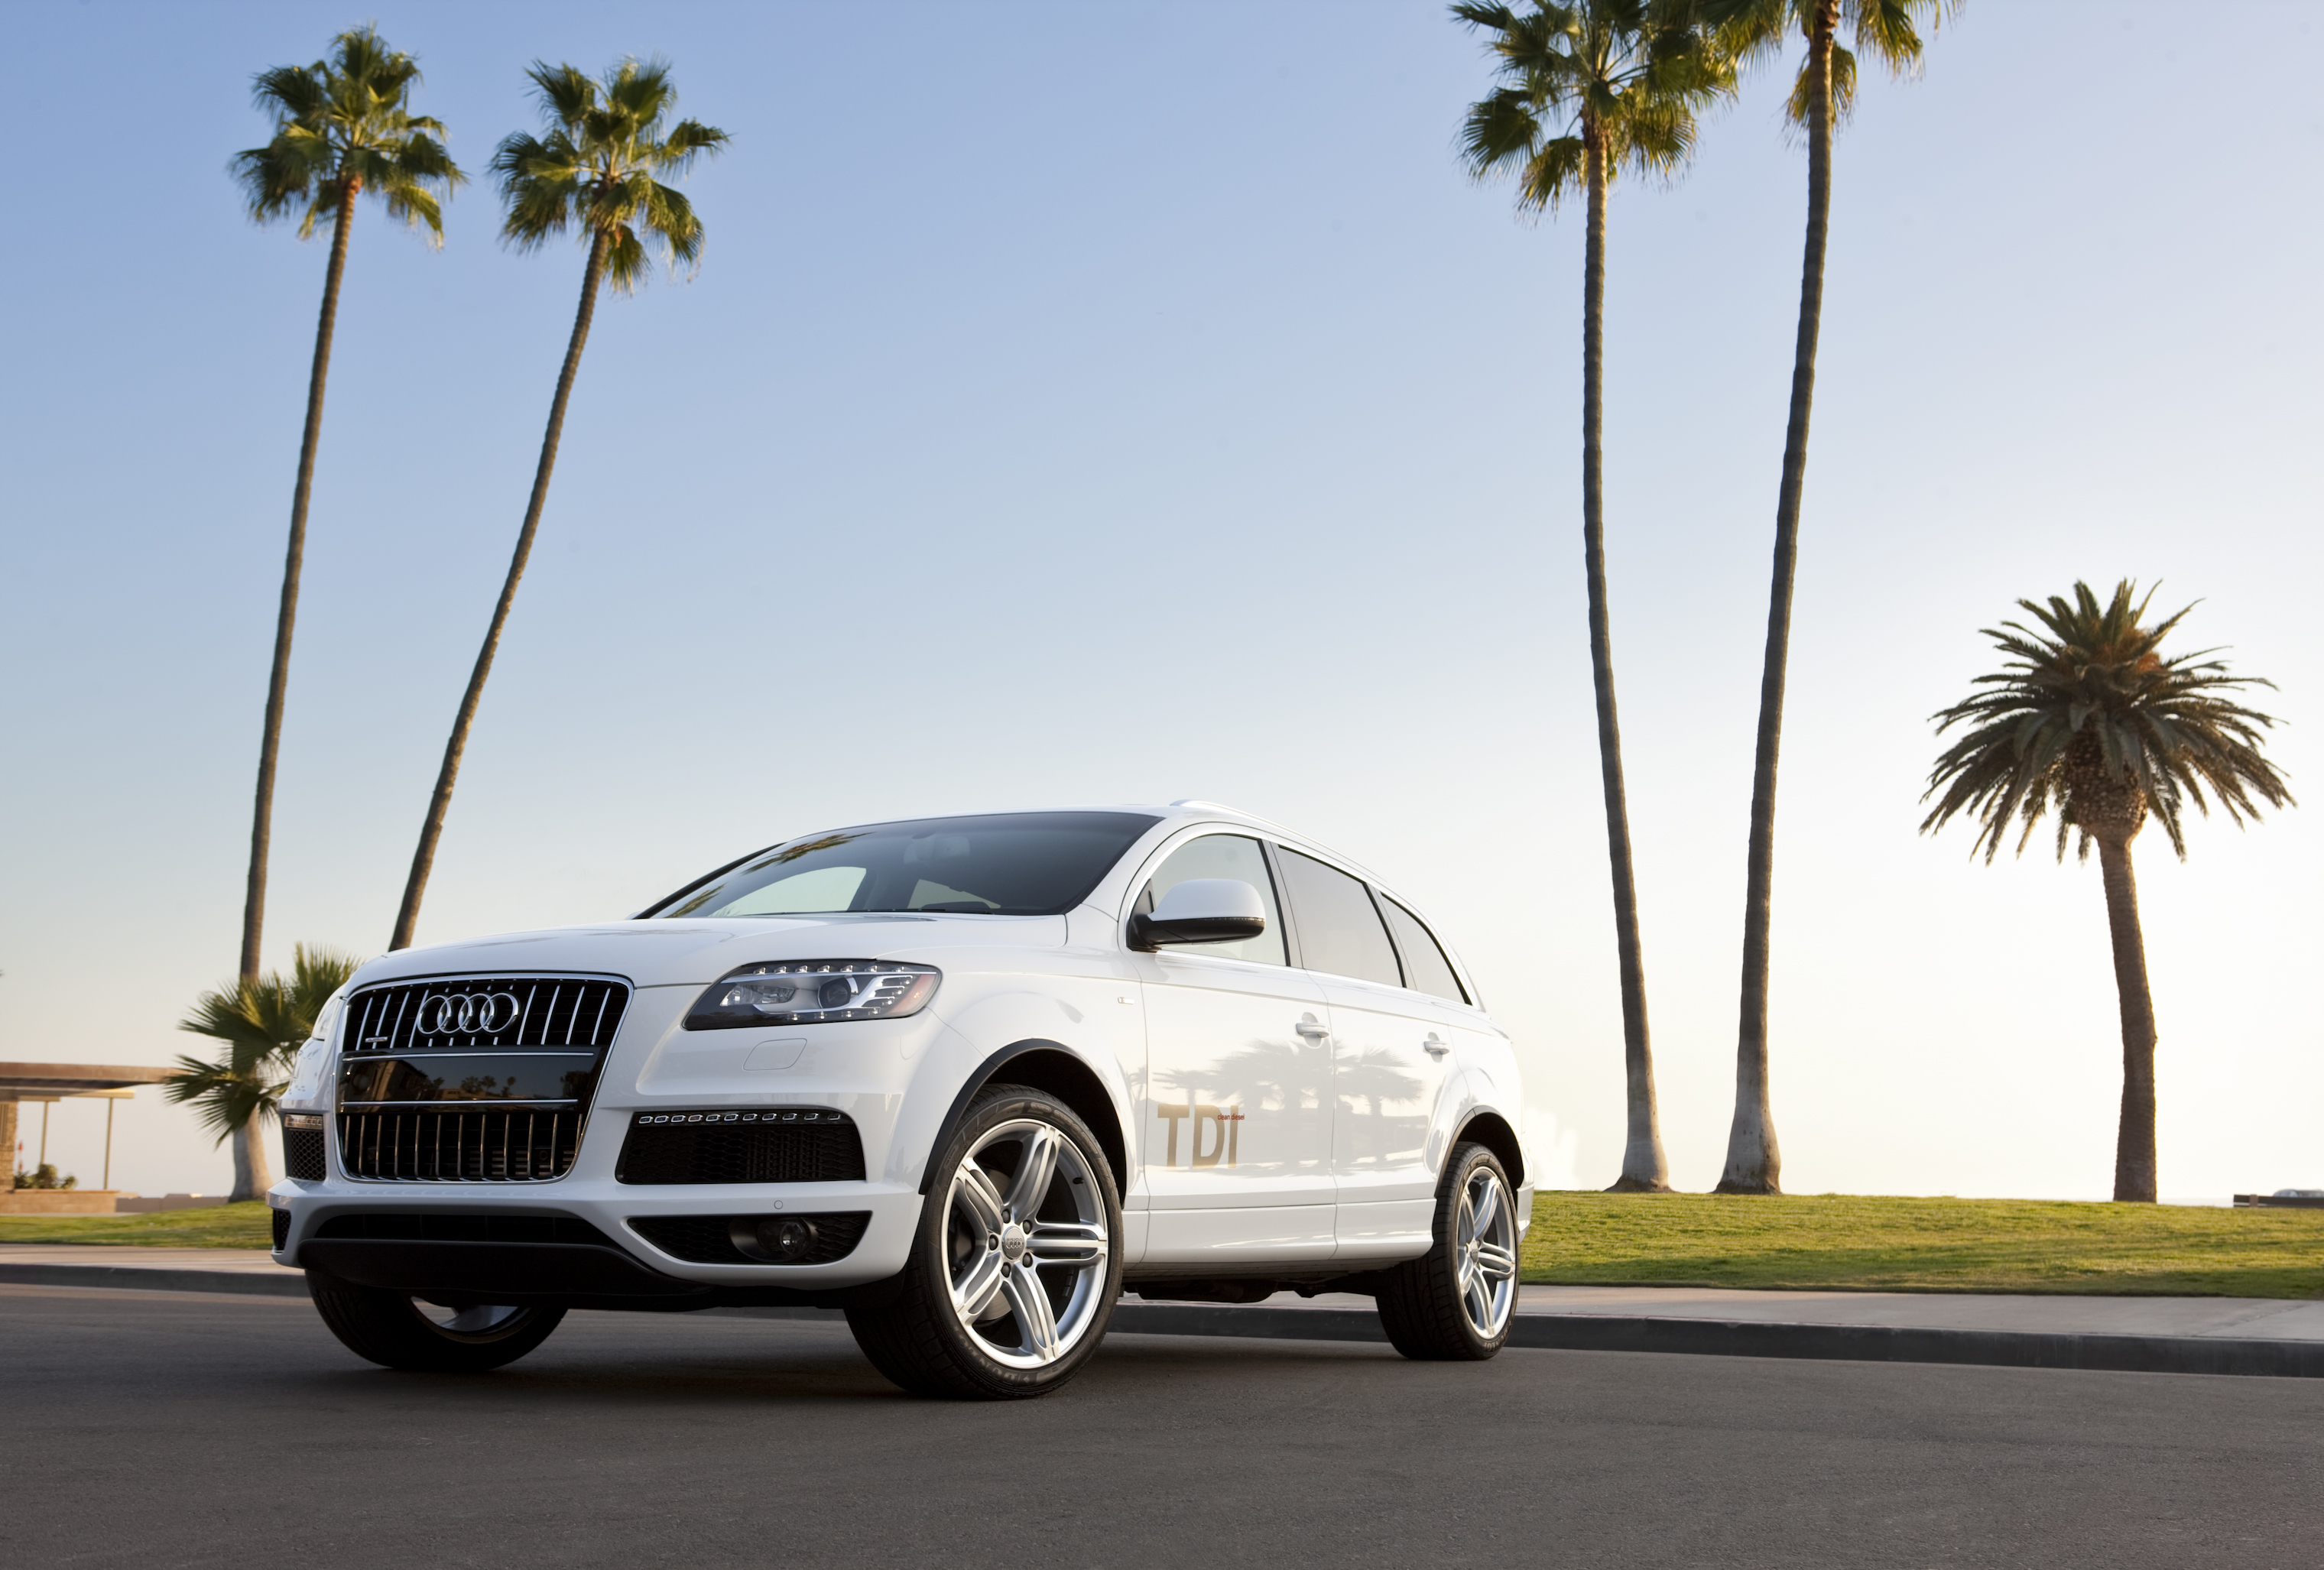 2014 Audi Q7 Gallery 511964 Top Speed